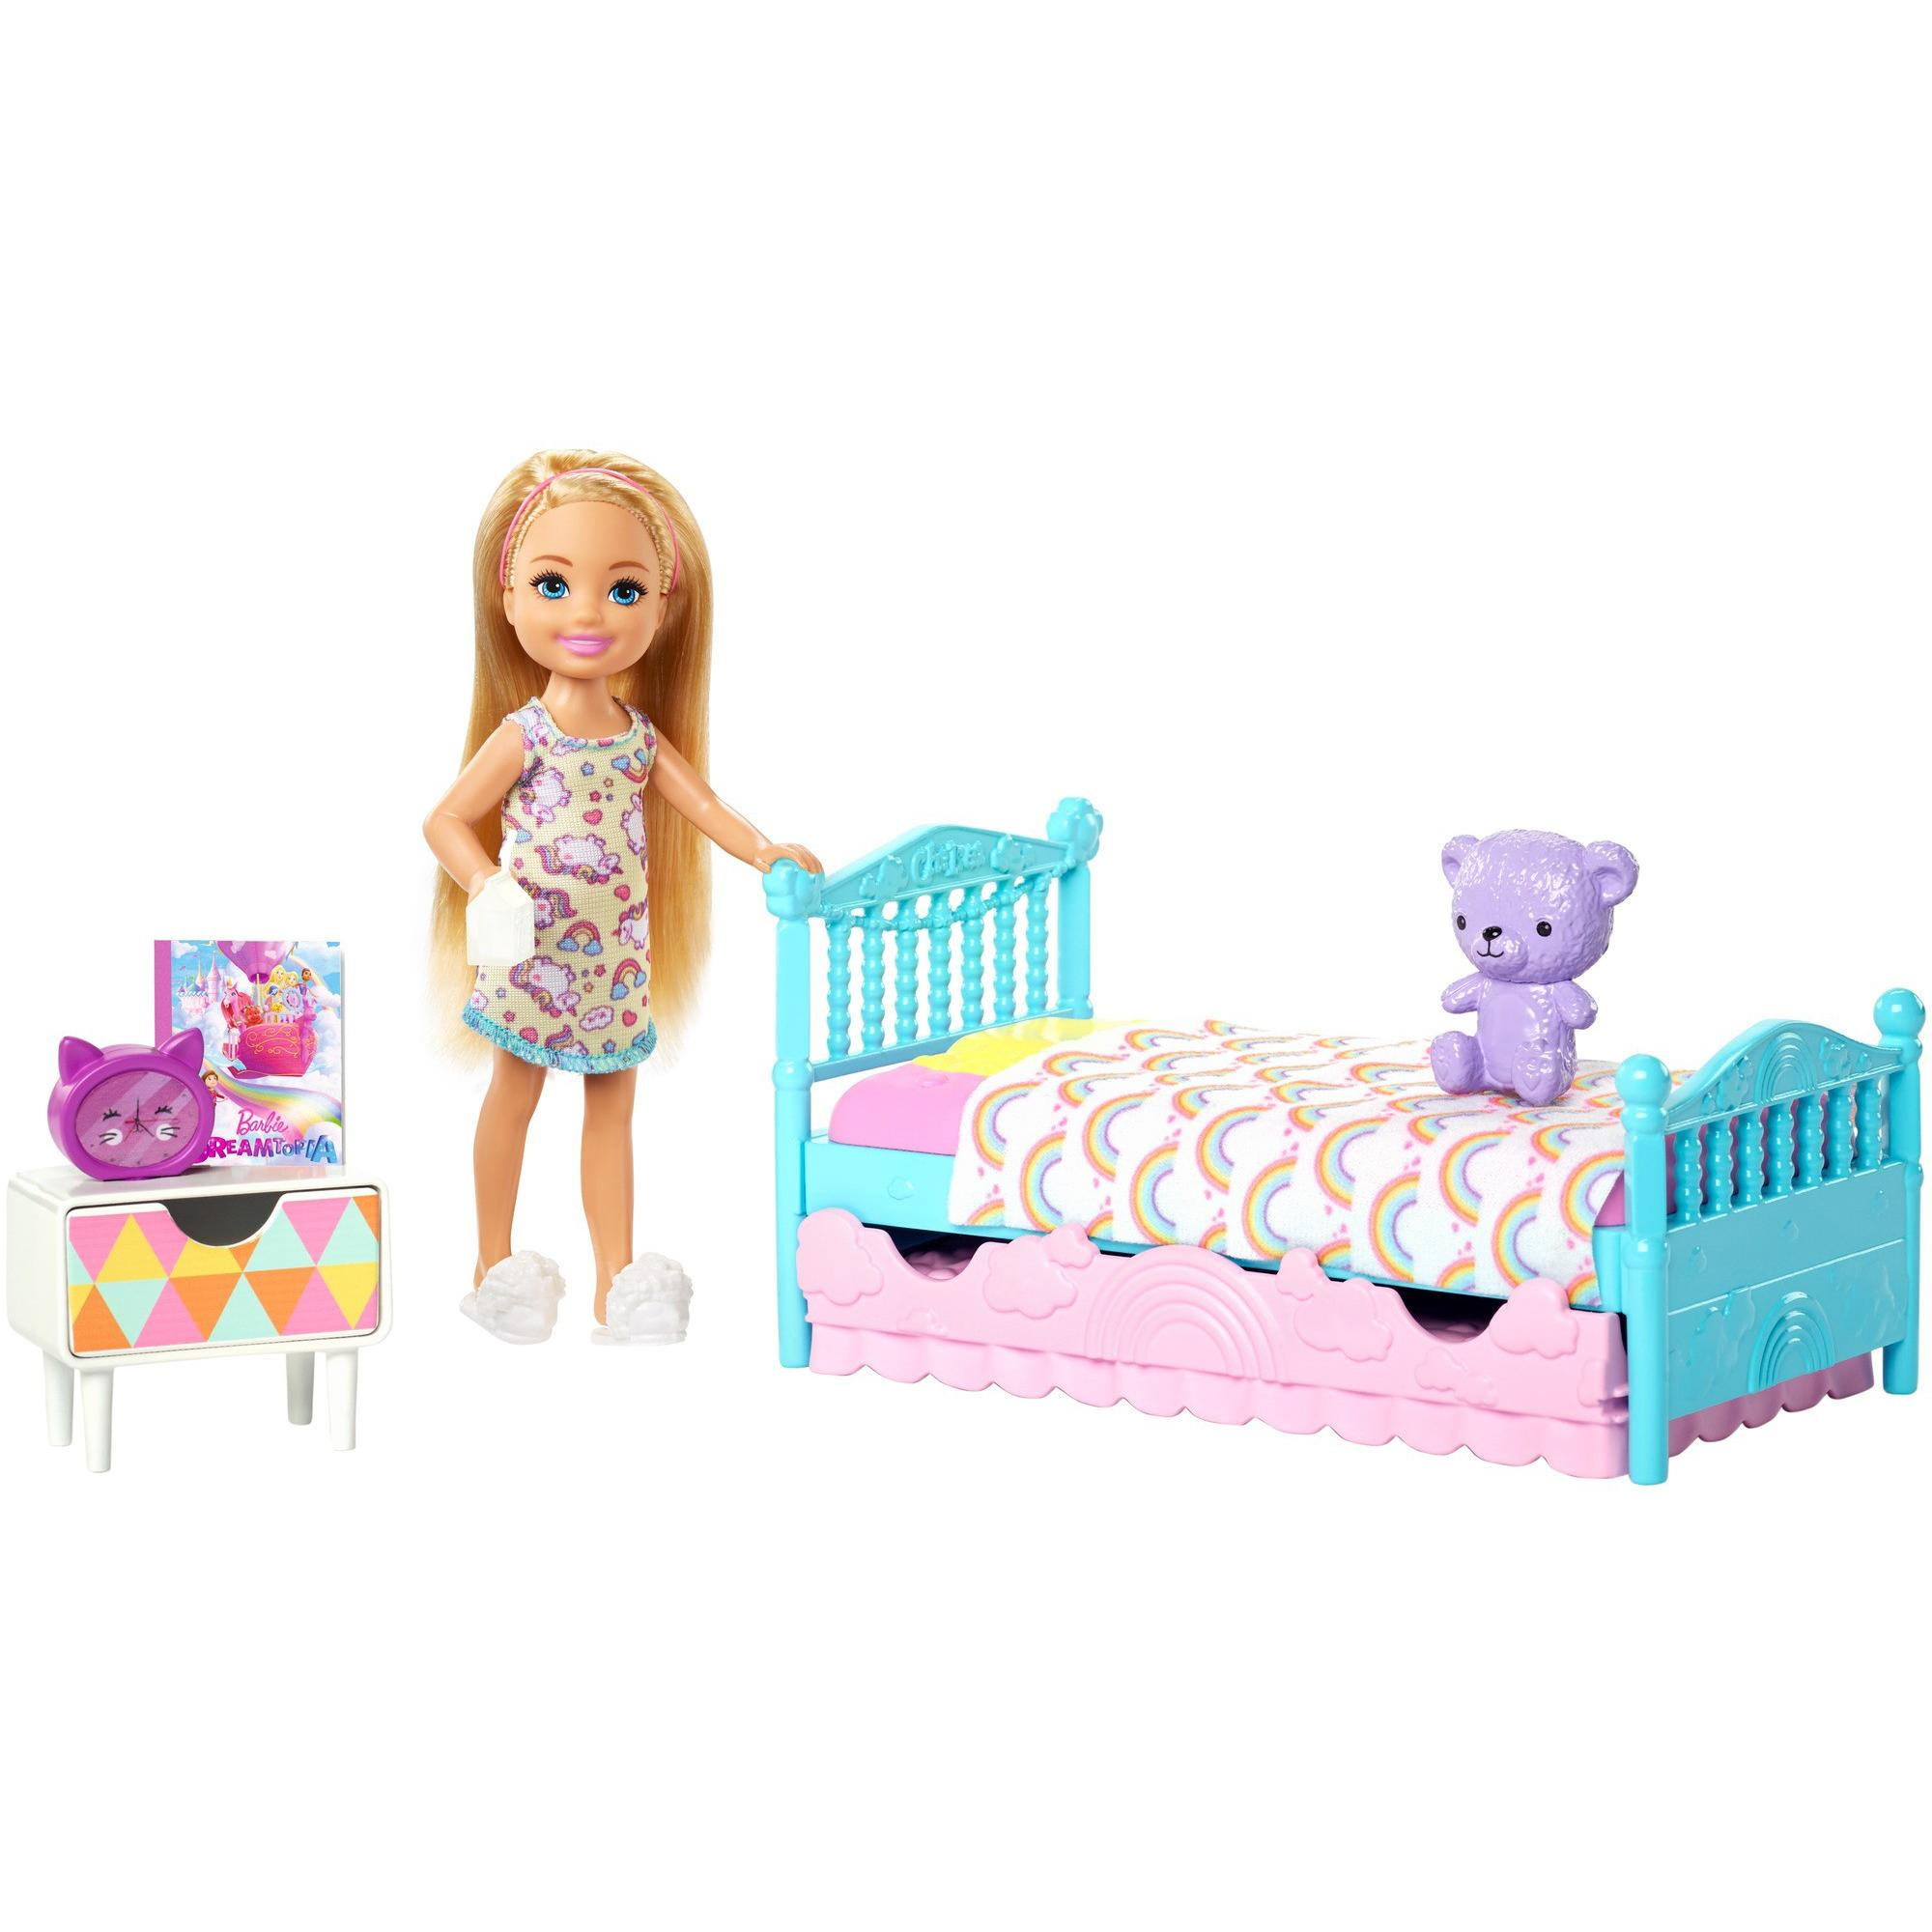 Barbie Club Chelsea Bedtime Doll and Bedroom Playset